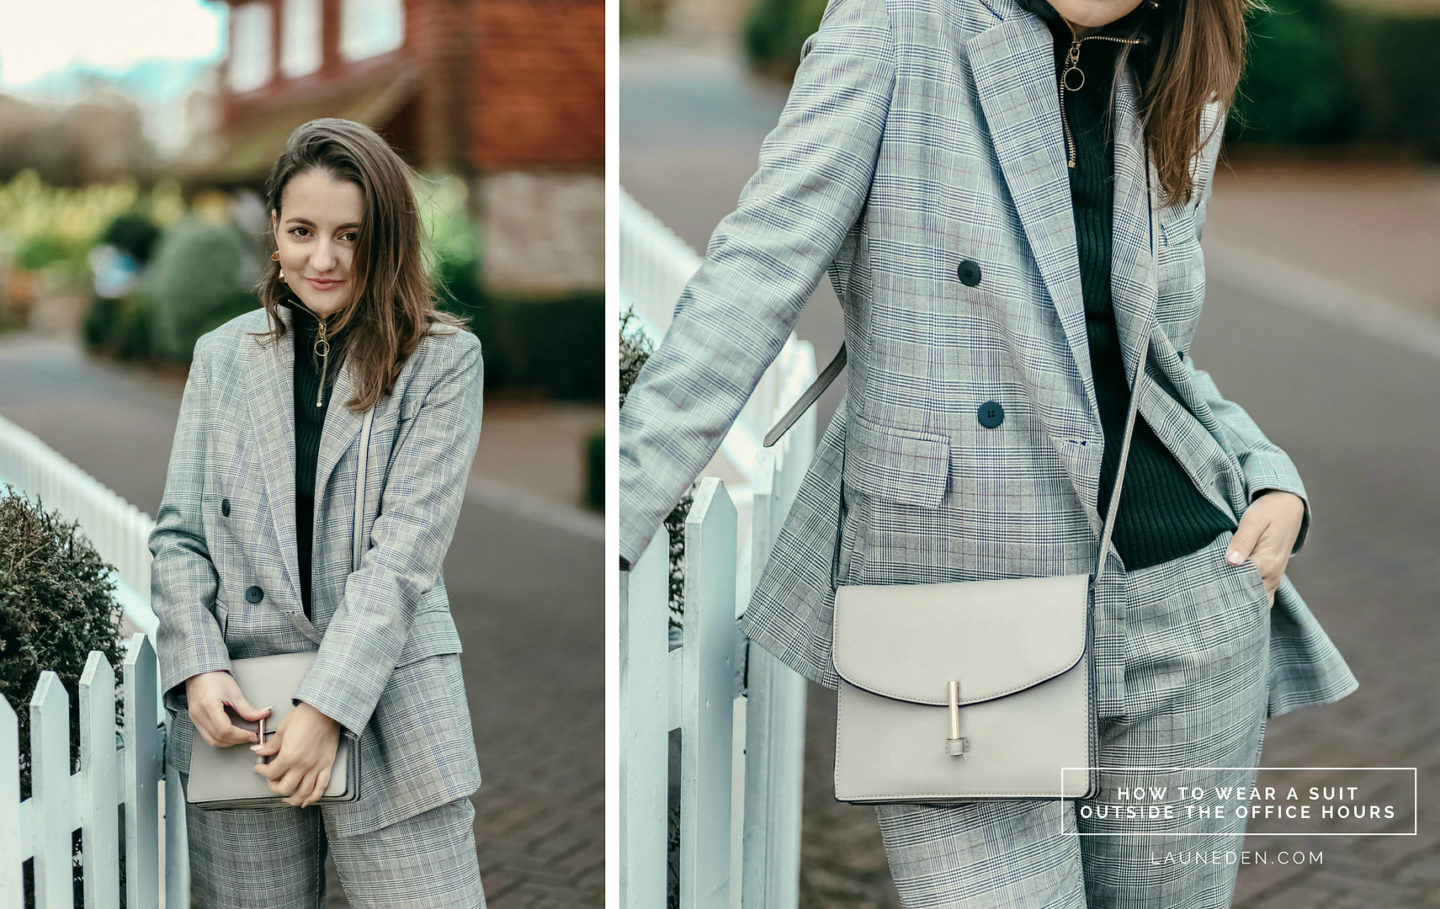 How to wear a suit outside the office hours